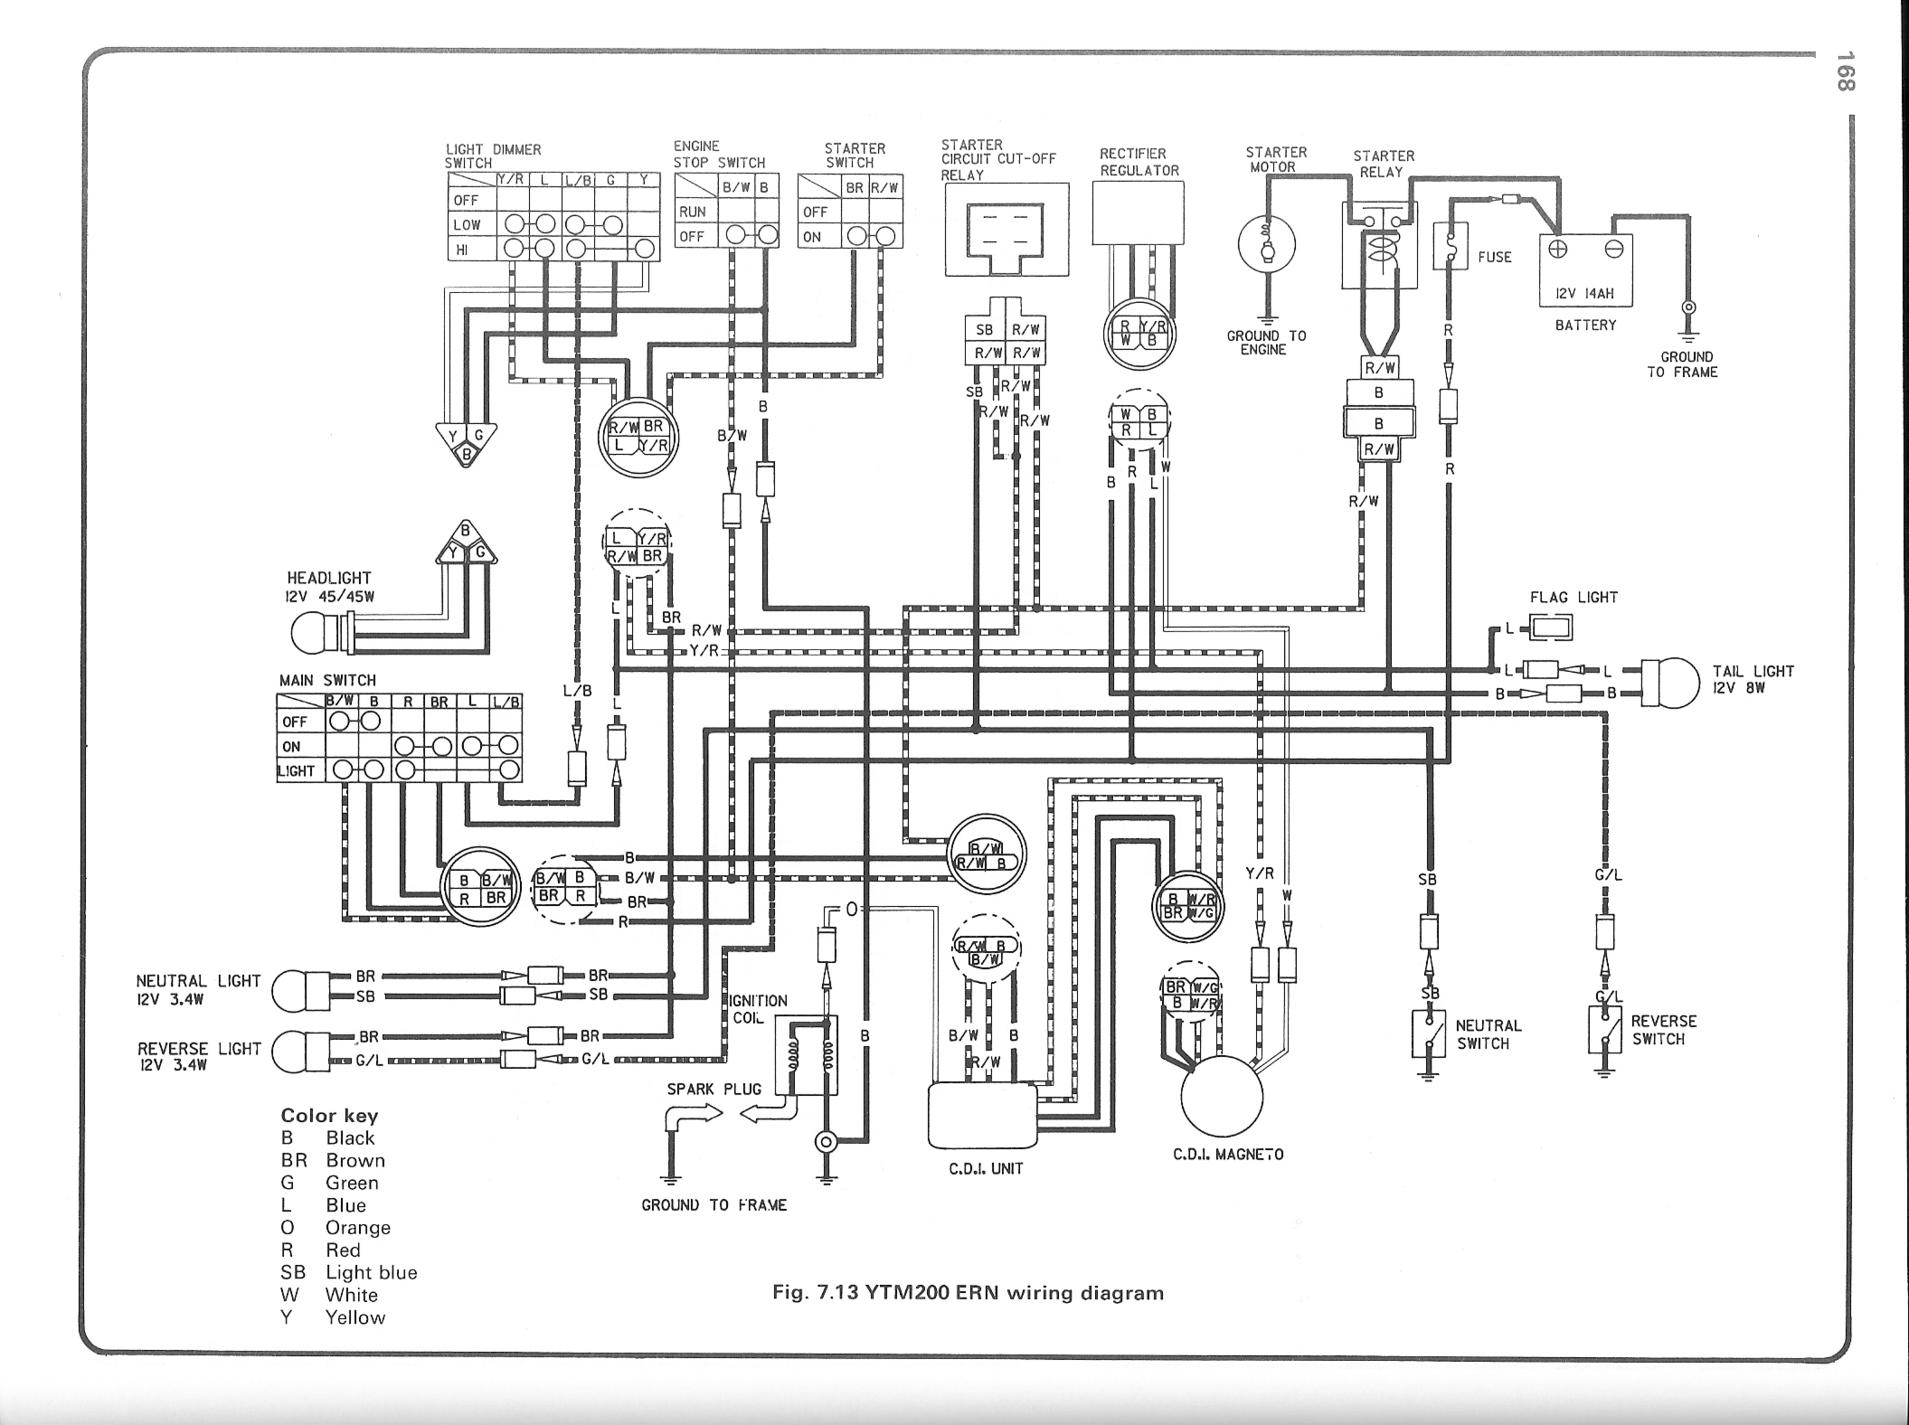 Kawasaki 4 Wheeler Wiring Diagram on 87 250 mojave wire diagram